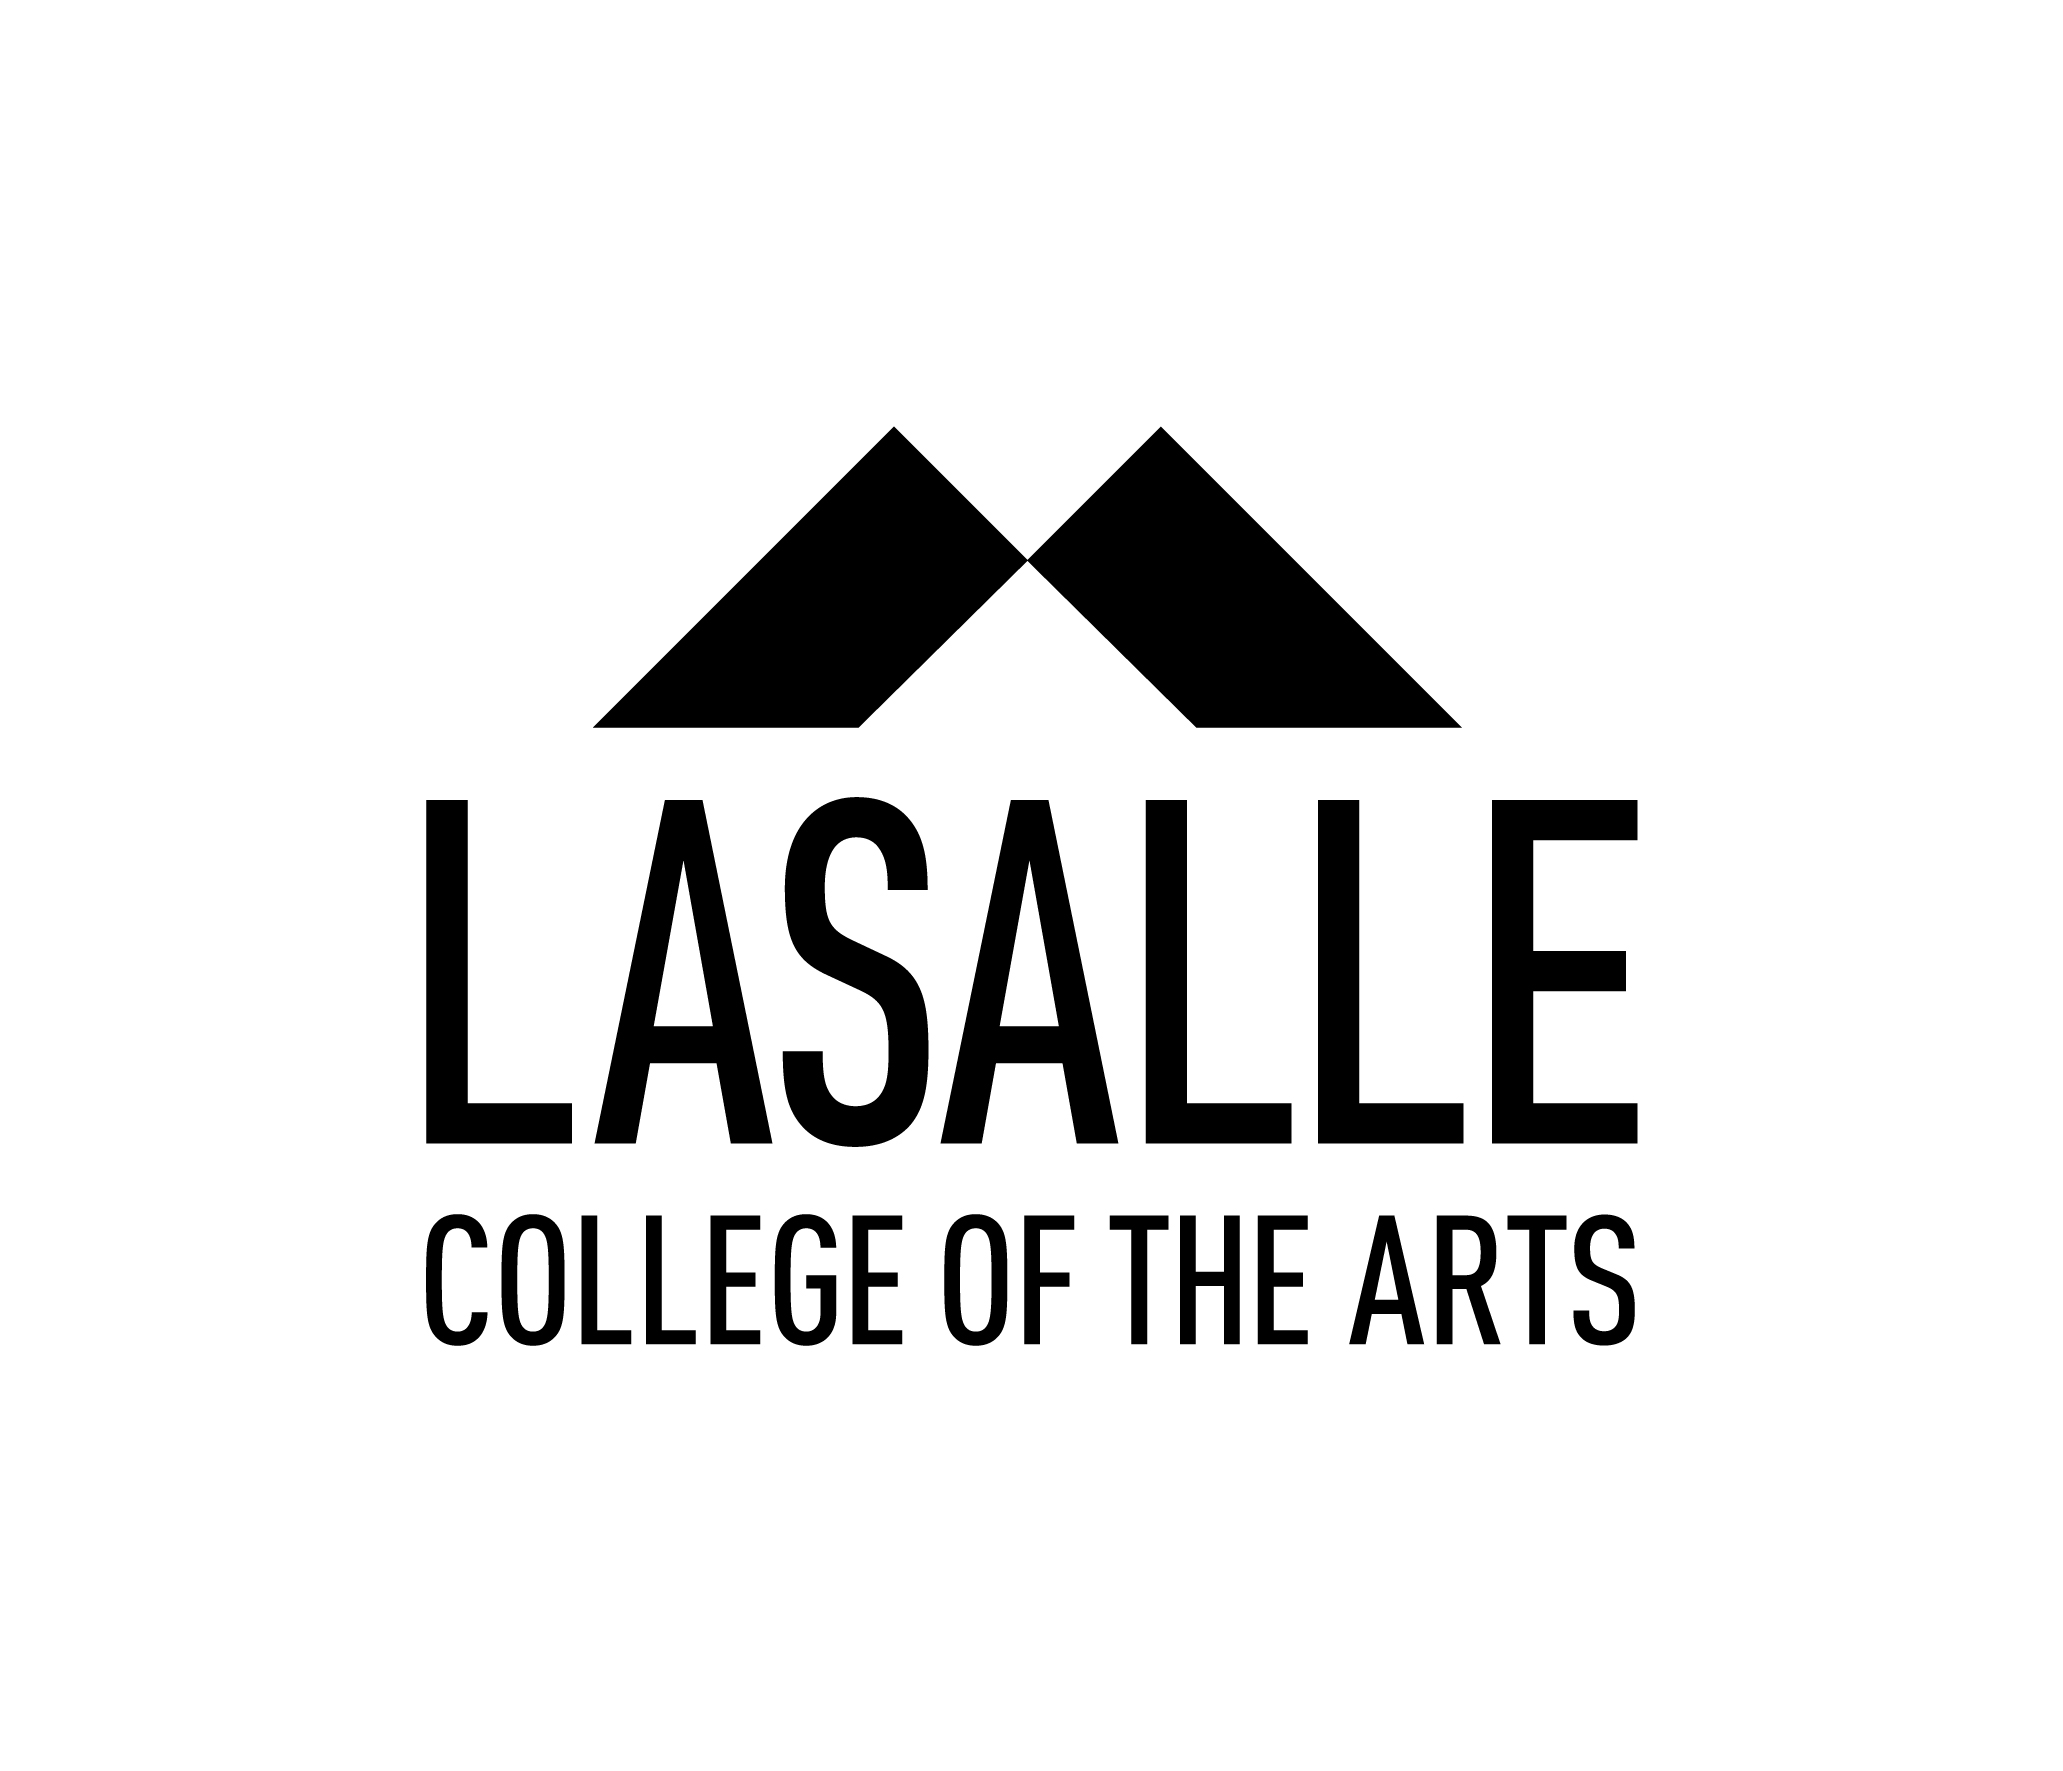 309-LASALLE College of the Arts.jpg